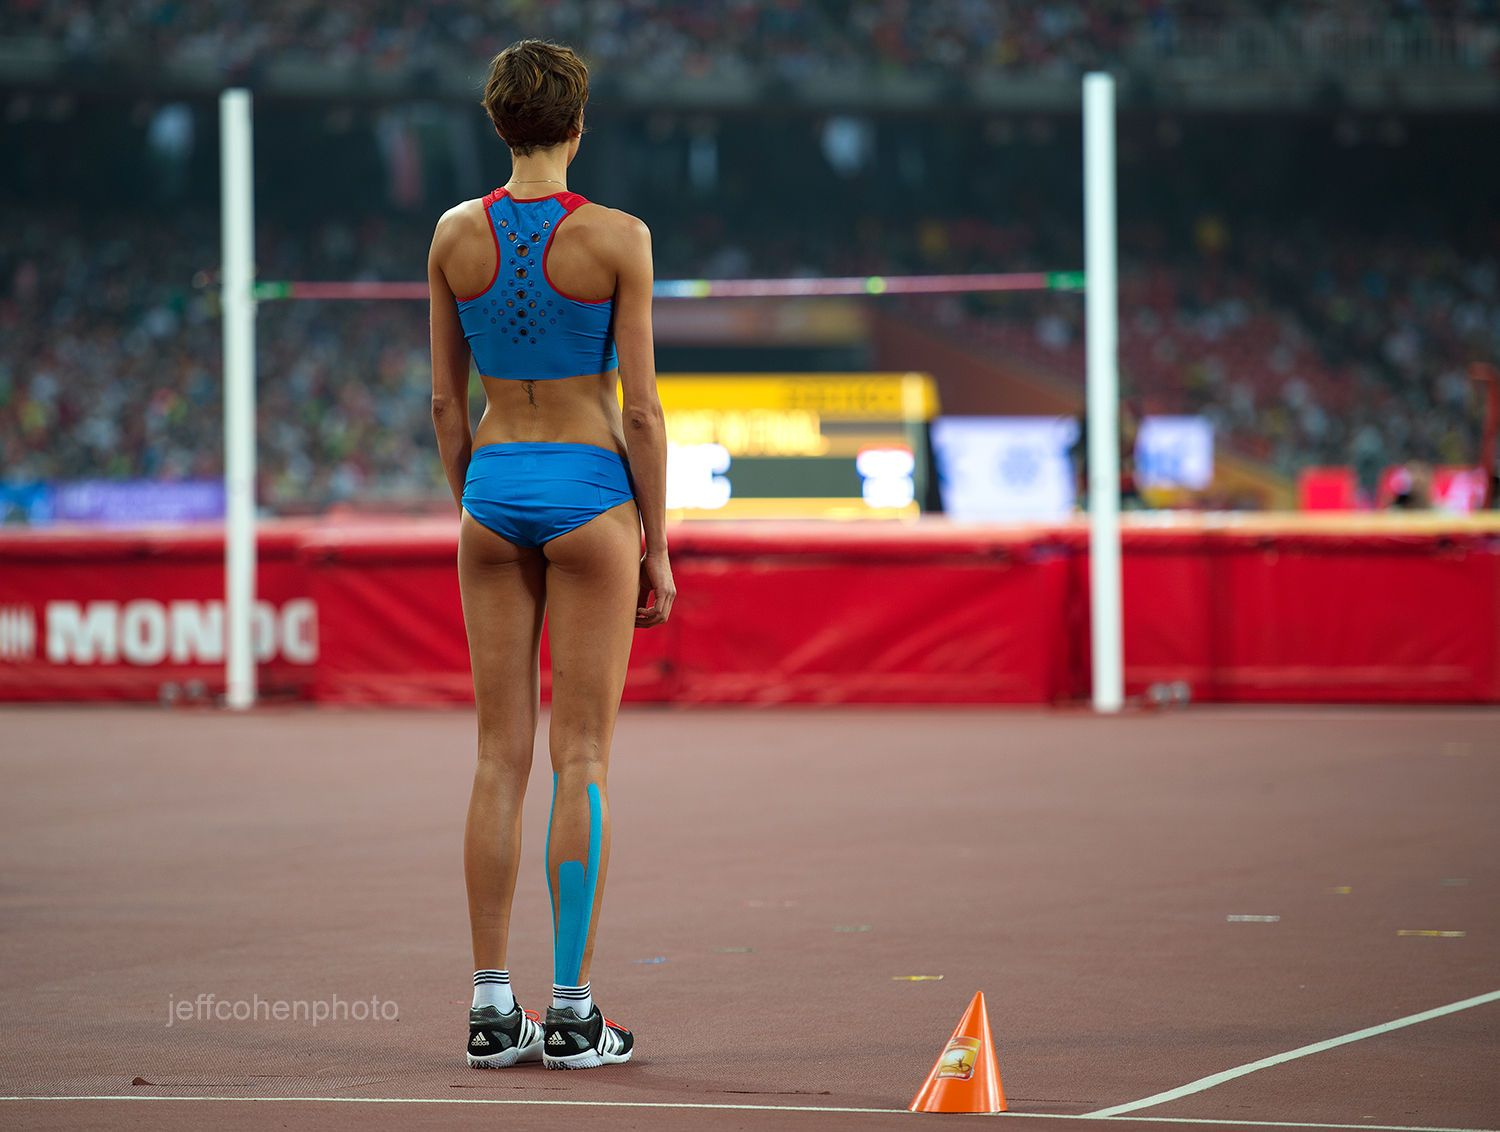 1beijing2015_night_8_blanka_vlasic_hjw_jeff_cohen_photo_32347_web.jpg